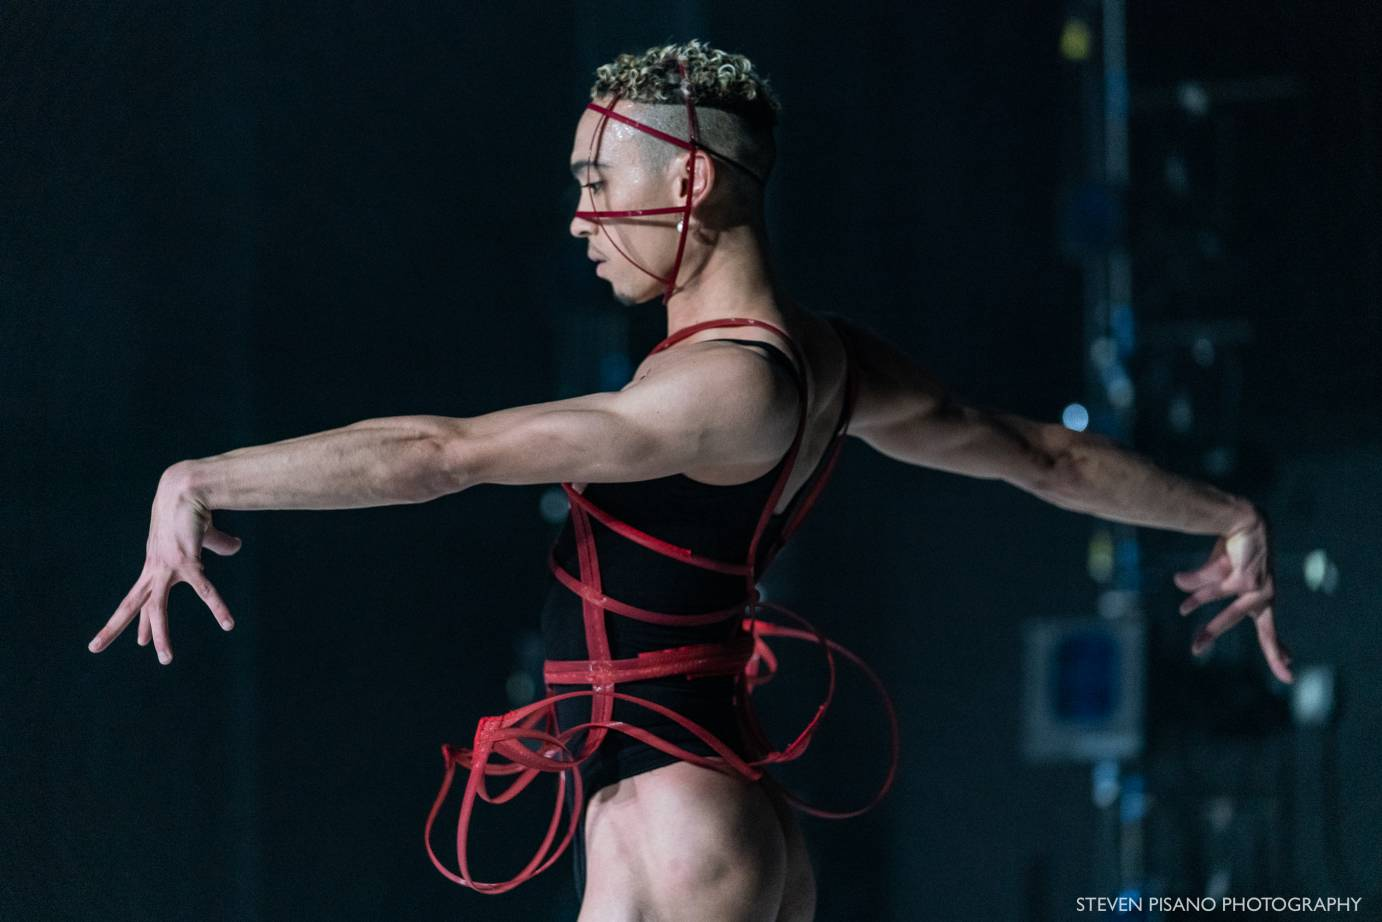 A dancer in a black leotard and red ribbon outstretches their arm their wrists bent.